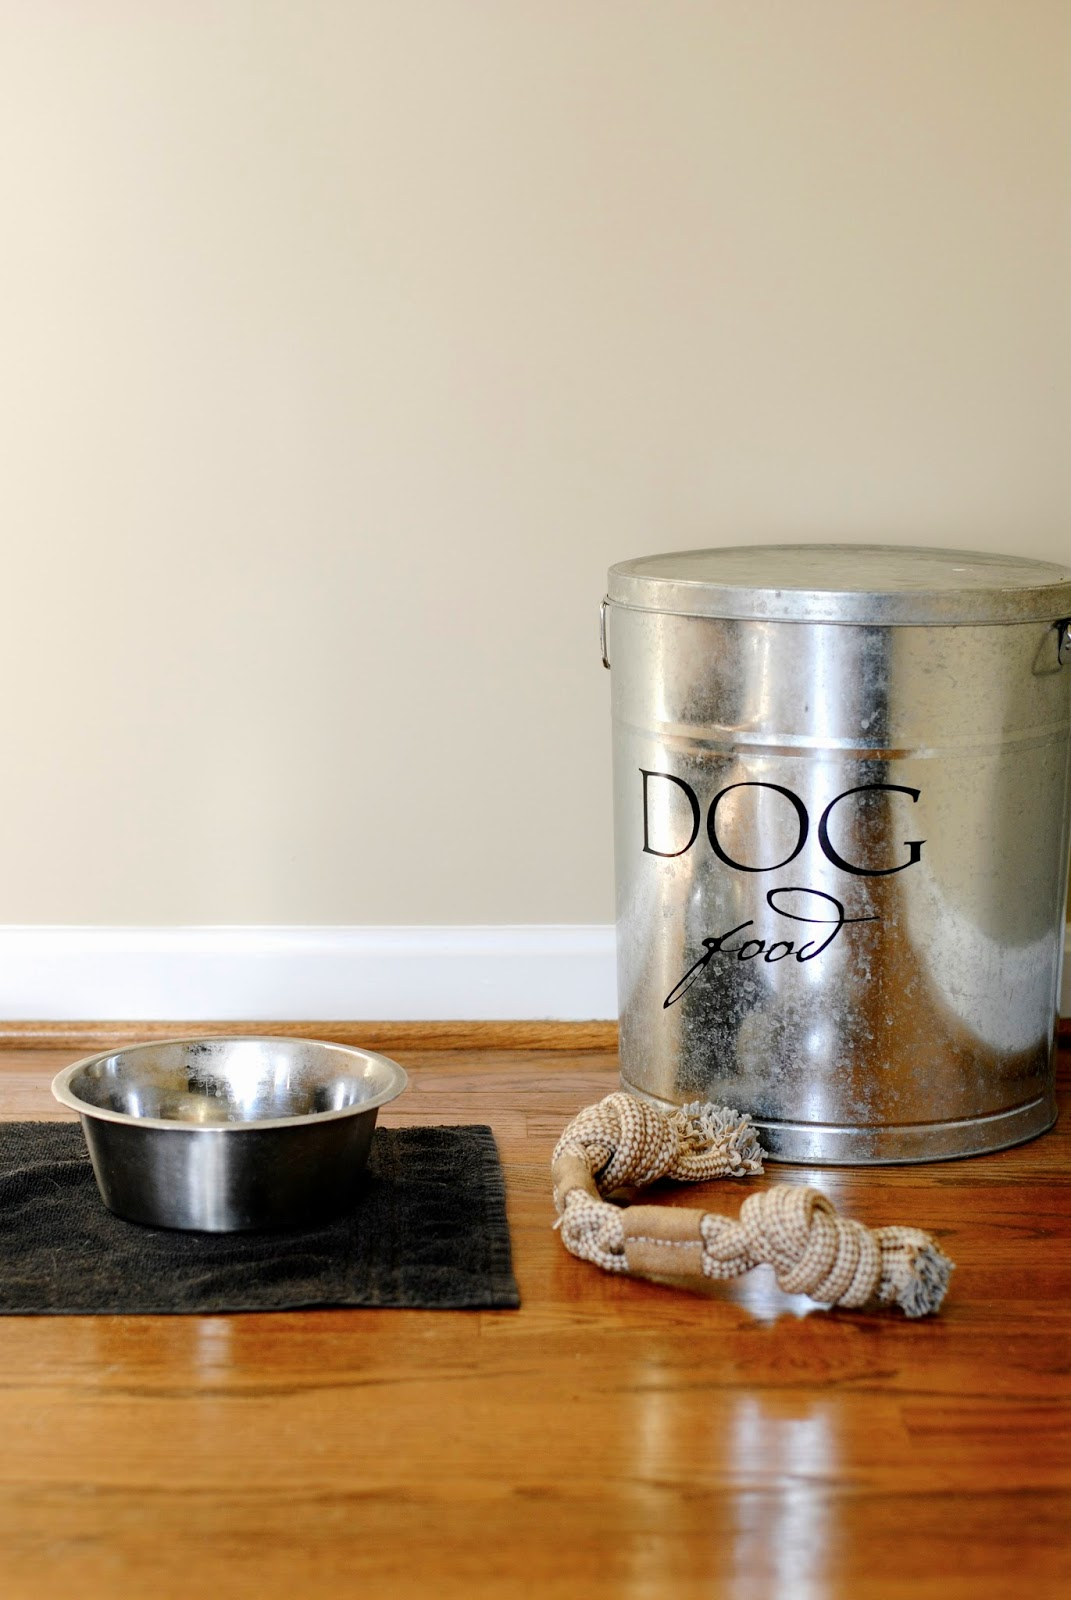 Simple Fix: Stylish and Functional Idea for Storing Dog Food